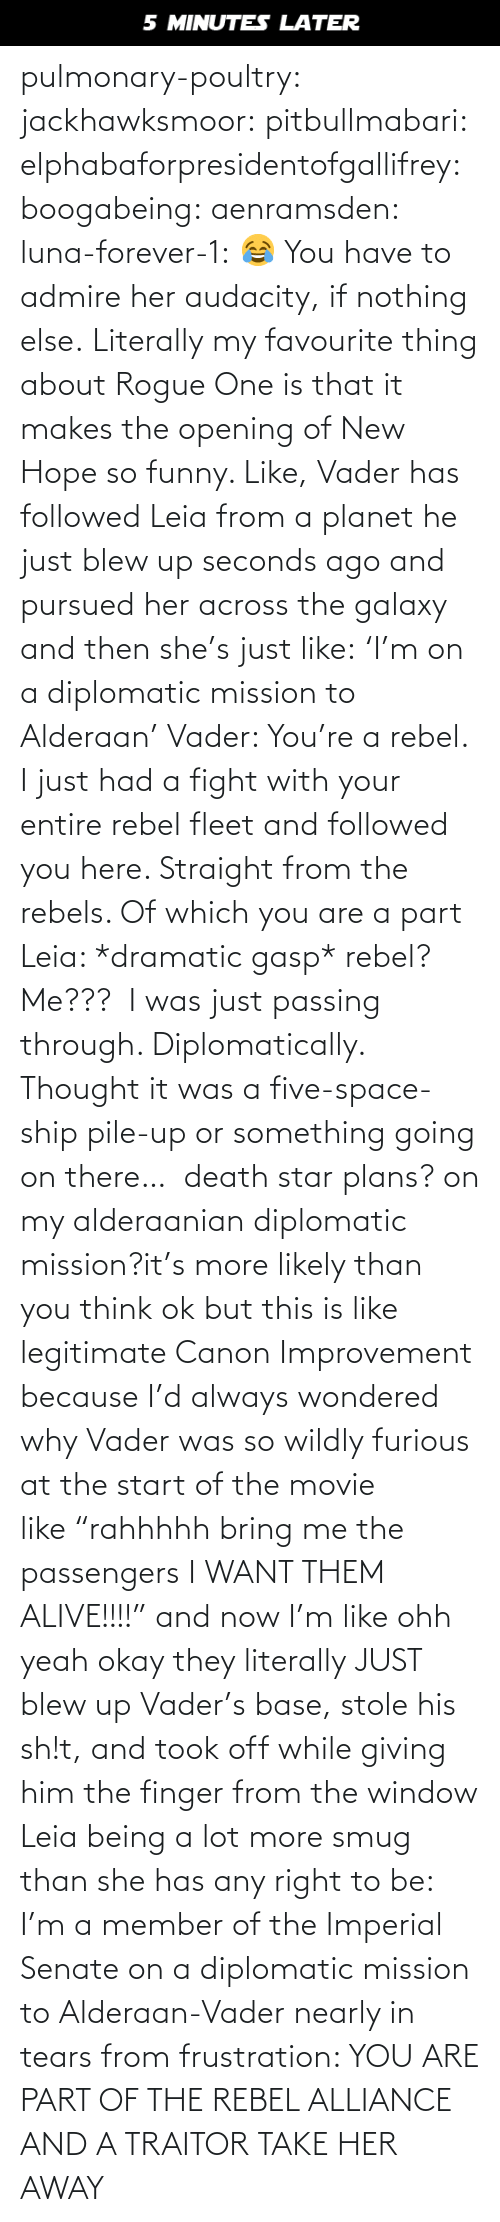 """Alive, Death Star, and Funny: 5 MINUTES LATER pulmonary-poultry:  jackhawksmoor:  pitbullmabari:  elphabaforpresidentofgallifrey:  boogabeing:  aenramsden:  luna-forever-1: 😂 You have to admire her audacity, if nothing else.  Literally my favourite thing about Rogue One is that it makes the opening of New Hope so funny. Like, Vader has followed Leia from a planet he just blew up seconds ago and pursued her across the galaxy and then she's just like:'I'm on a diplomatic mission to Alderaan' Vader: You're a rebel. I just had a fight with your entire rebel fleet and followed you here. Straight from the rebels. Of which you are a part Leia: *dramatic gasp* rebel? Me??? I was just passing through. Diplomatically. Thought it was a five-space-ship pile-up or something going on there…  death star plans? on my alderaanian diplomatic mission?it's more likely than you think   ok but this is like legitimate Canon Improvement because I'd always wondered why Vader was so wildly furious at the start of the movie like""""rahhhhh bring me the passengers I WANT THEM ALIVE!!!!"""" and now I'm like ohh yeah okay they literally JUST blew up Vader's base, stole his sh!t, and took off while giving him the finger from the window    Leia being a lot more smug than she has any right to be: I'm a member of the Imperial Senate on a diplomatic mission to Alderaan-Vader nearly in tears from frustration: YOU ARE PART OF THE REBEL ALLIANCE AND A TRAITOR TAKE HER AWAY"""